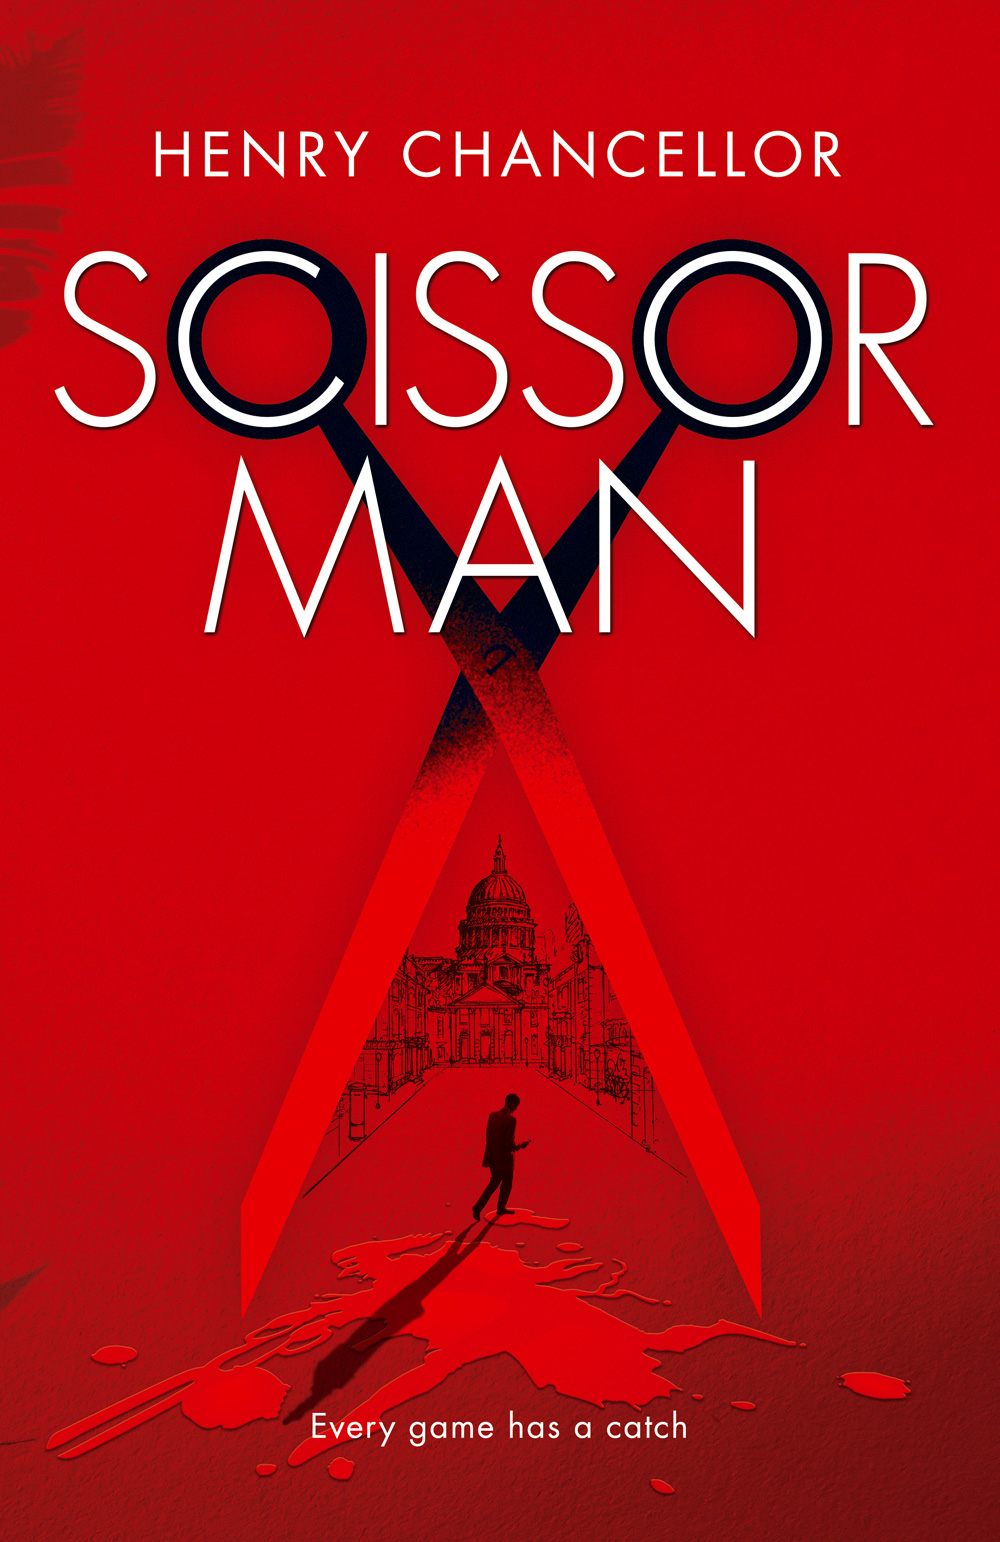 Scissorman bookcover final design